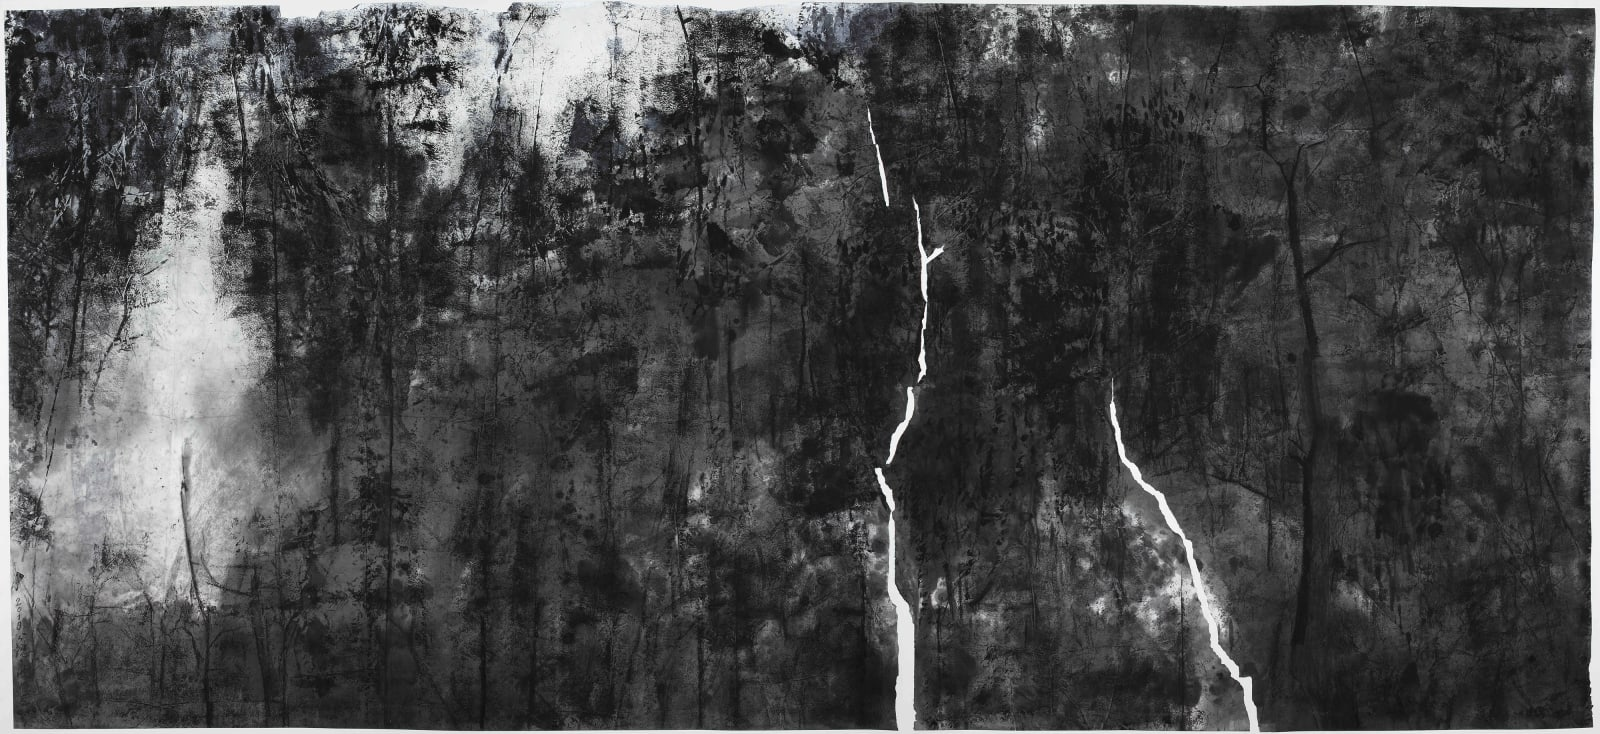 Wang Gongyi 王公懿, Fairbanks Under the Solstice 阿拉斯加 - 冬至, 2019